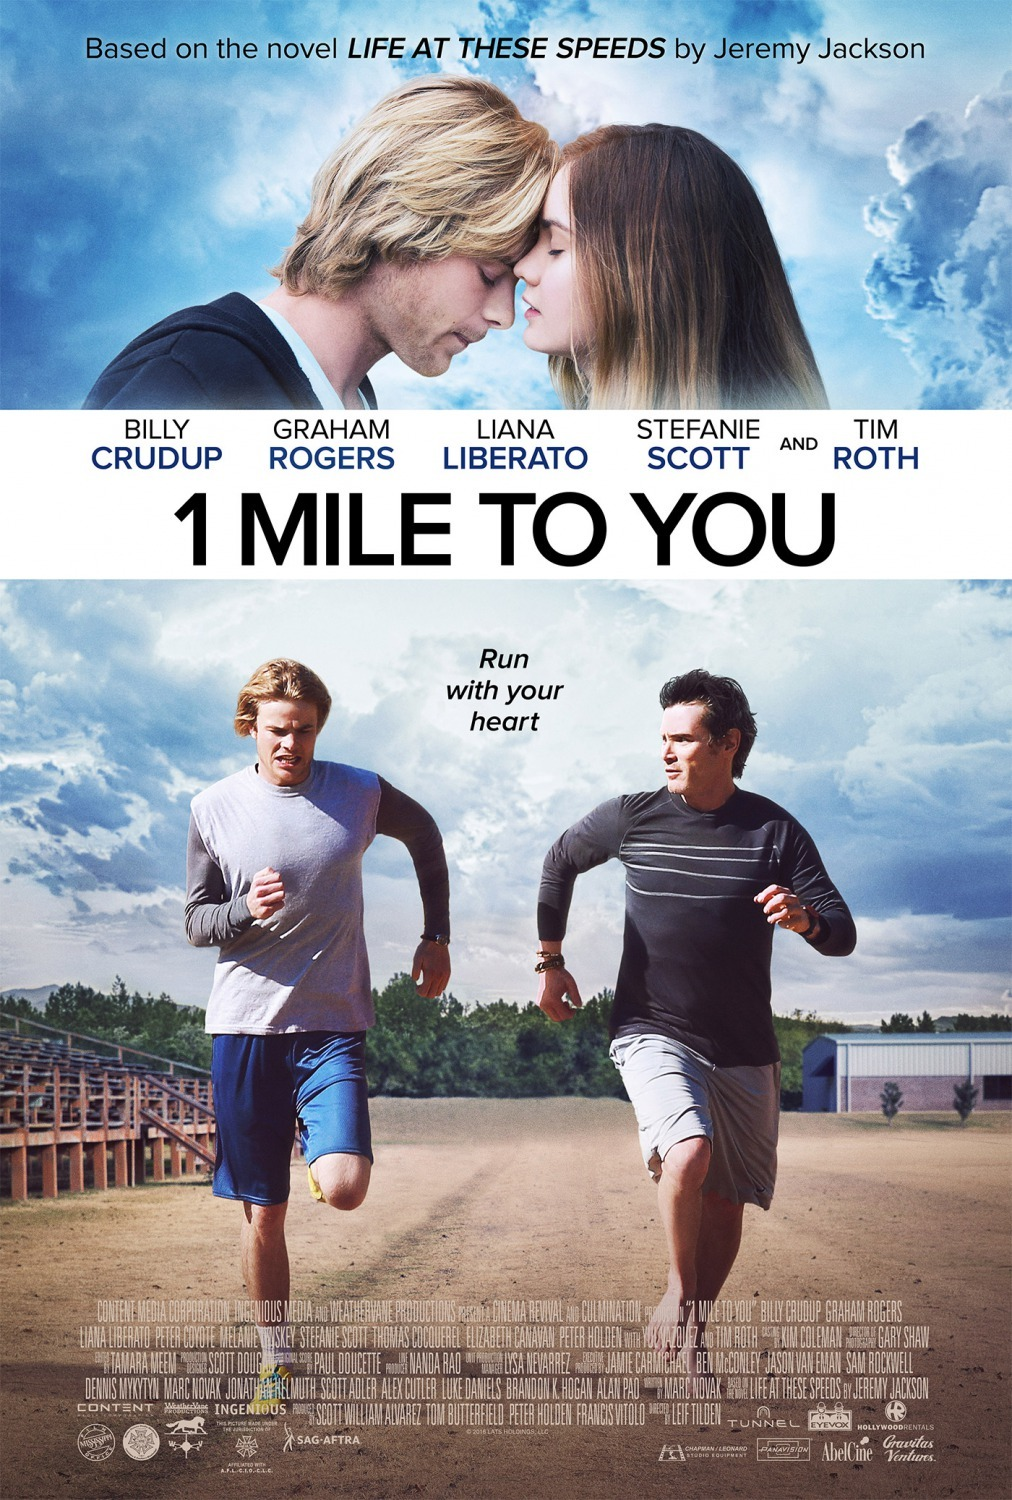 Image 1 Mile to You Watch Full Movie Free Online